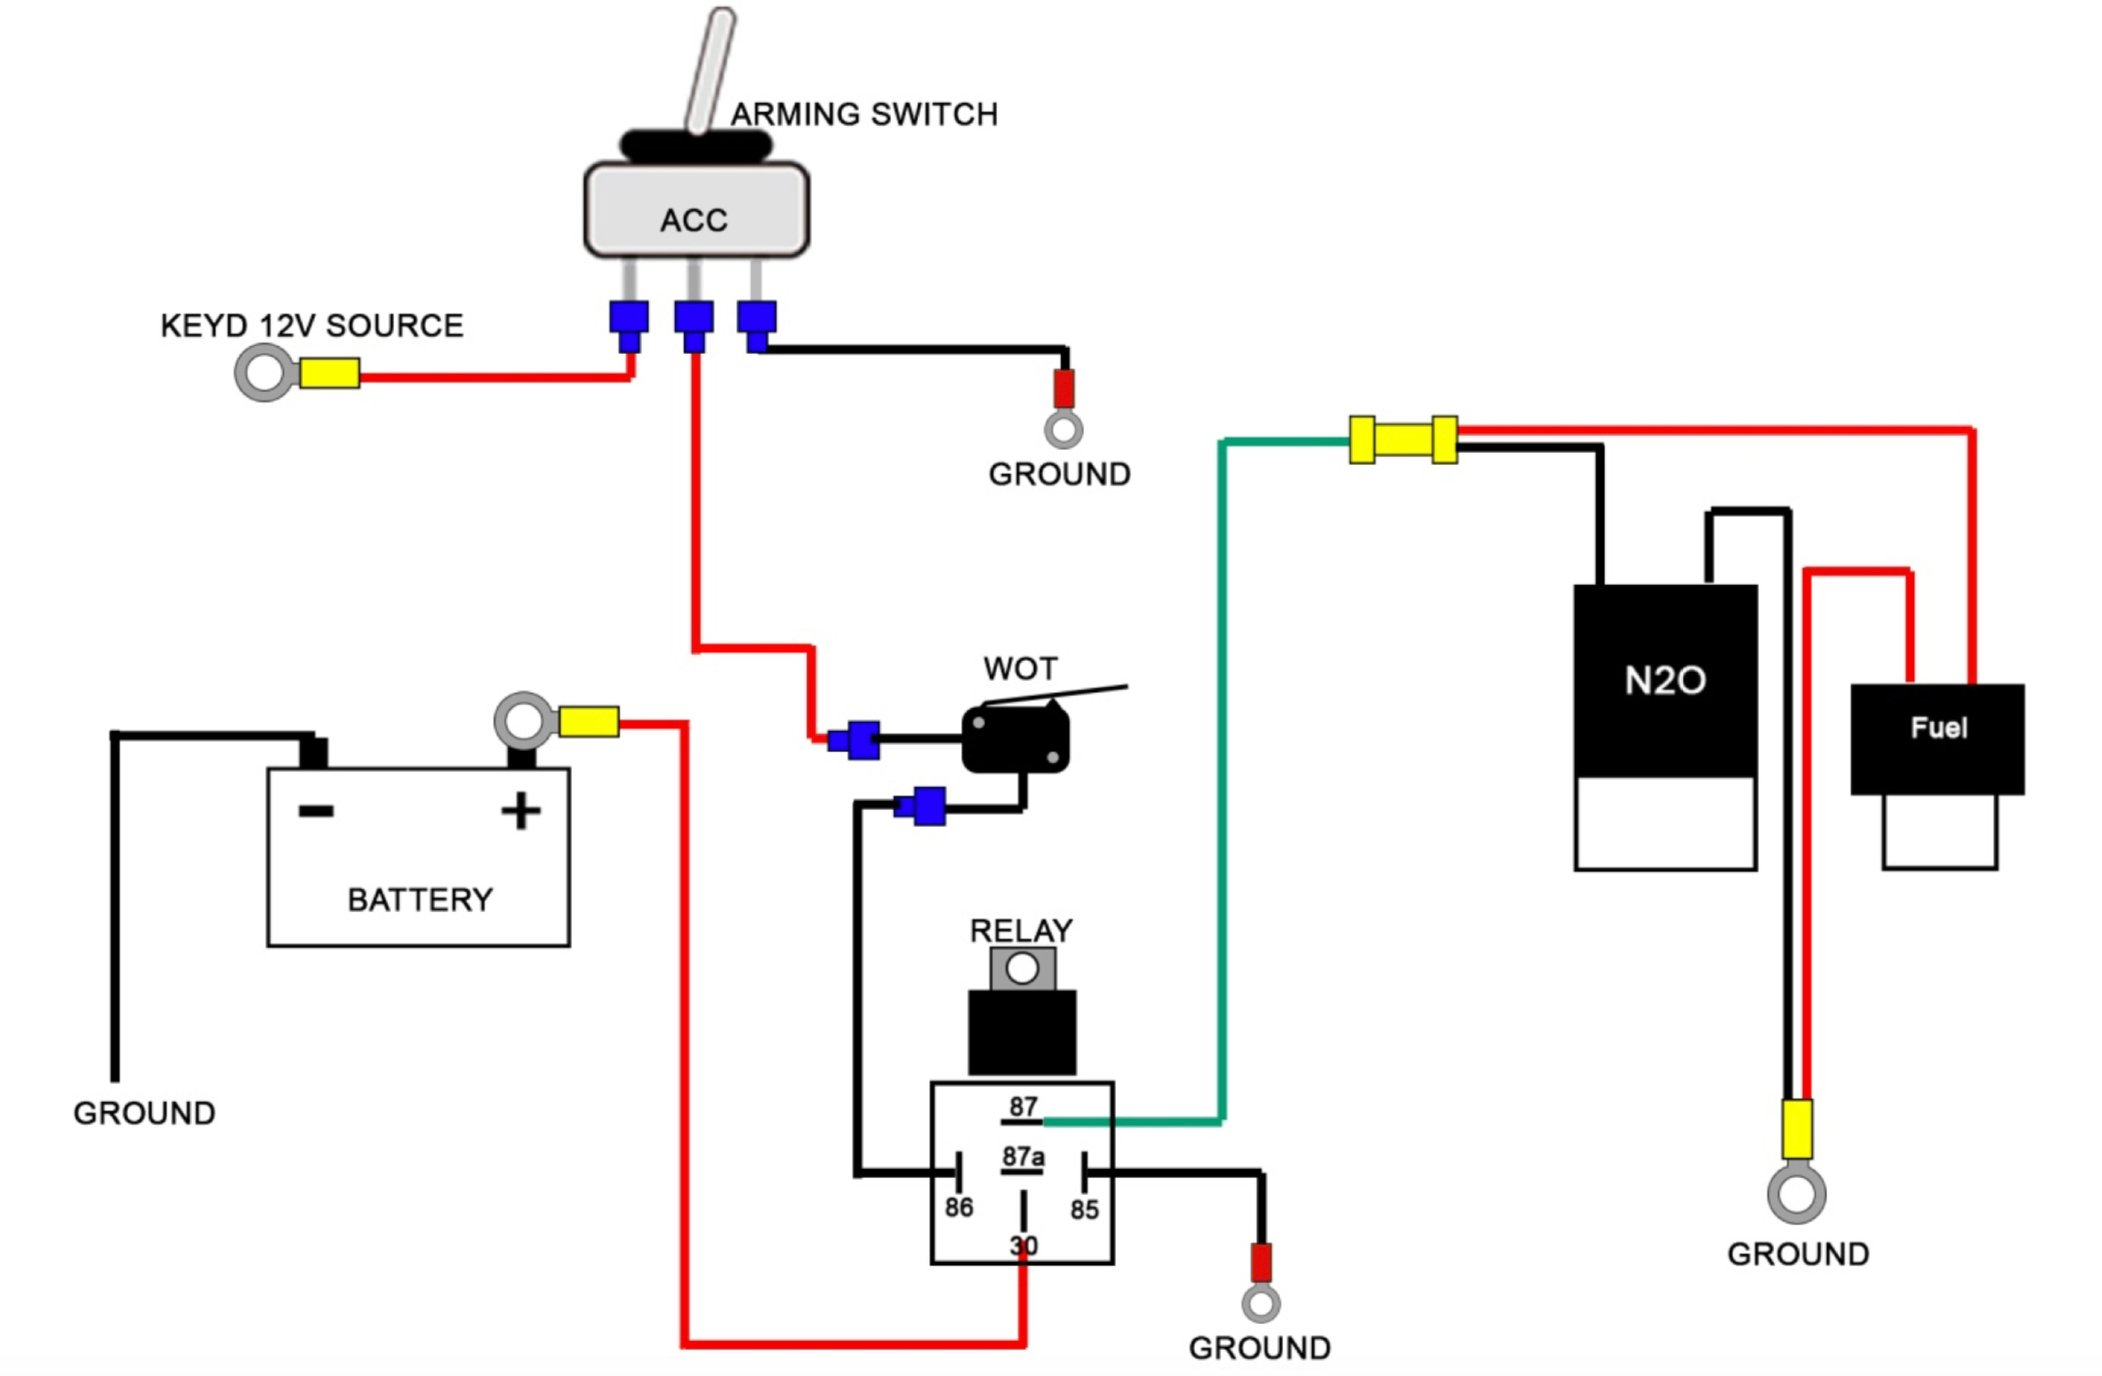 Nitrous Wiring Diagram - seniorsclub.it cable-field -  cable-field.seniorsclub.it | Wilson Nitrous Wiring Diagram |  | diagram database